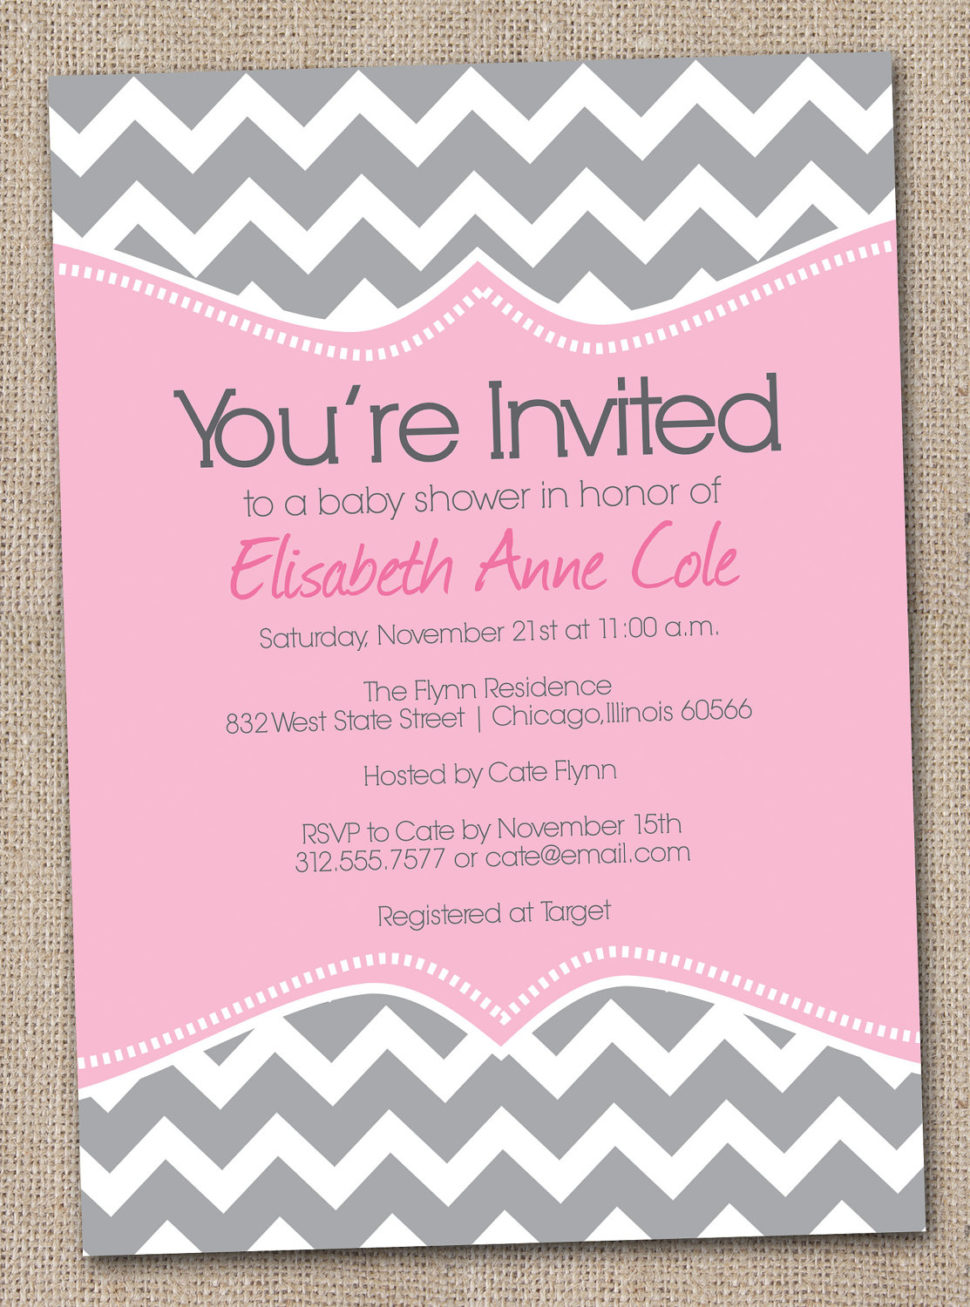 Medium Size of Baby Shower:63+ Delightful Cheap Baby Shower Invitations Image Inspirations Arreglos Para Baby Shower Baby Shower Centerpieces Baby Shower Venues Nyc Baby Shower Stuff